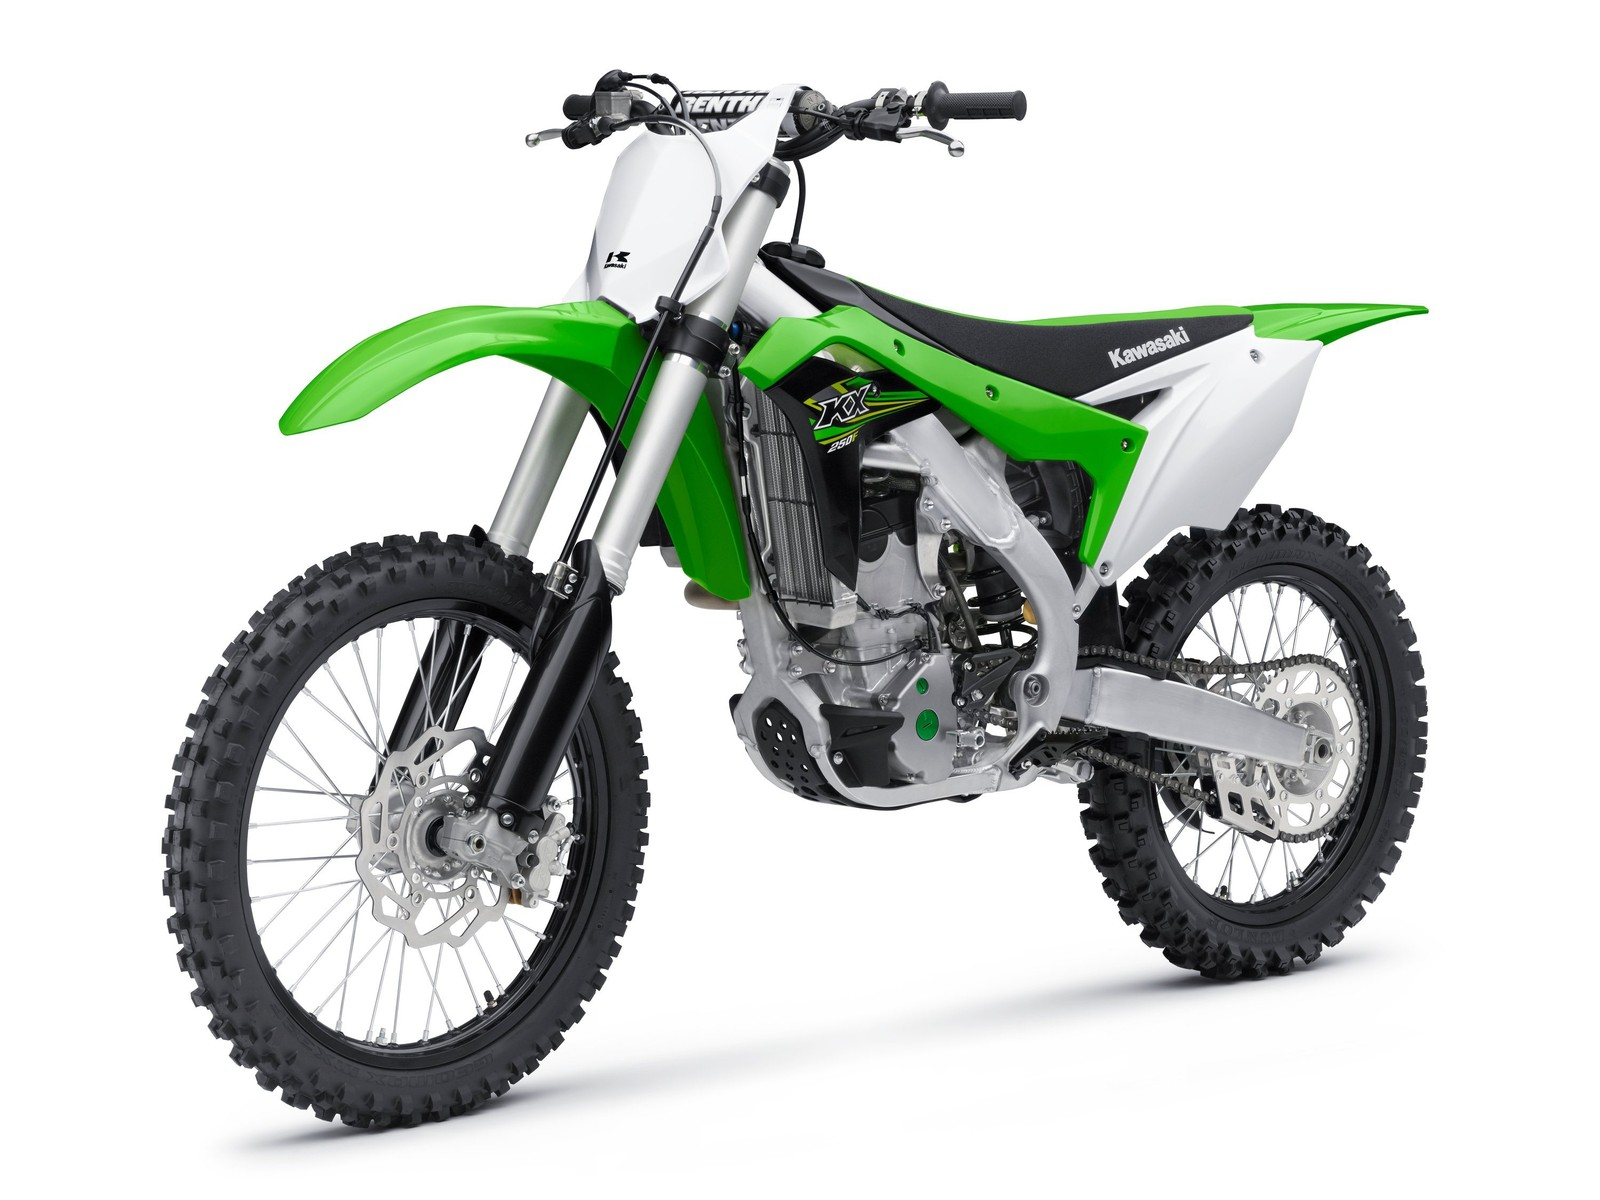 2017 kawasaki kx250f first look 2017 kawasaki kx250f. Black Bedroom Furniture Sets. Home Design Ideas